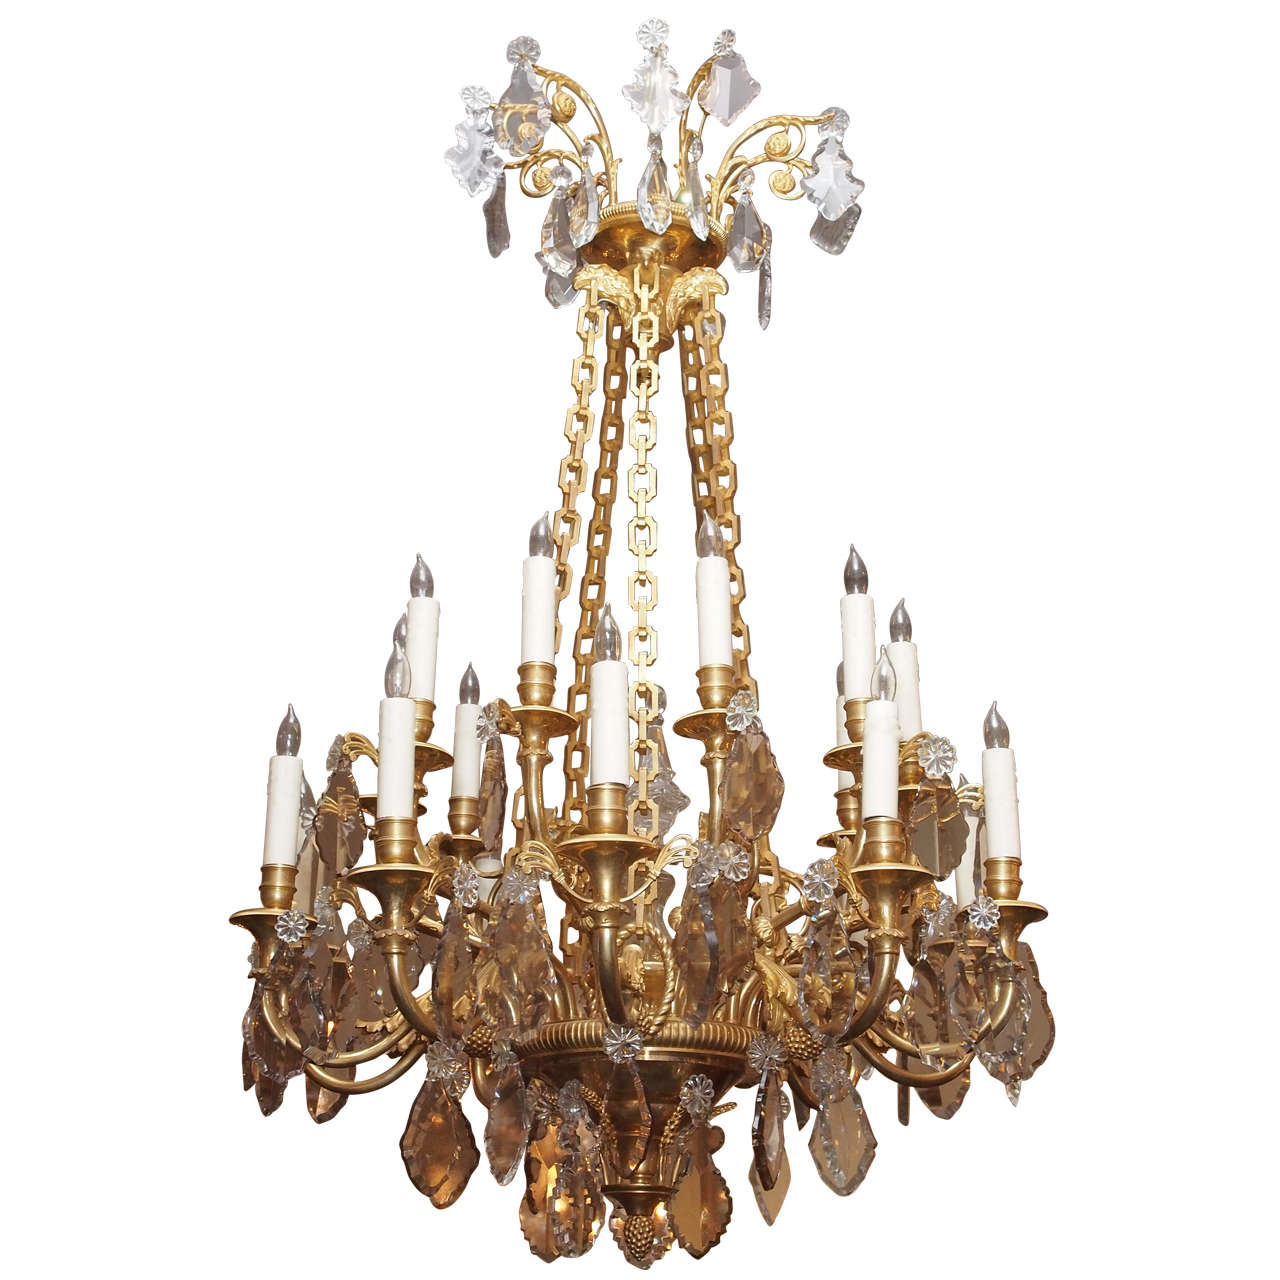 Antique French Finest Ormolu And Baccarat Crystal